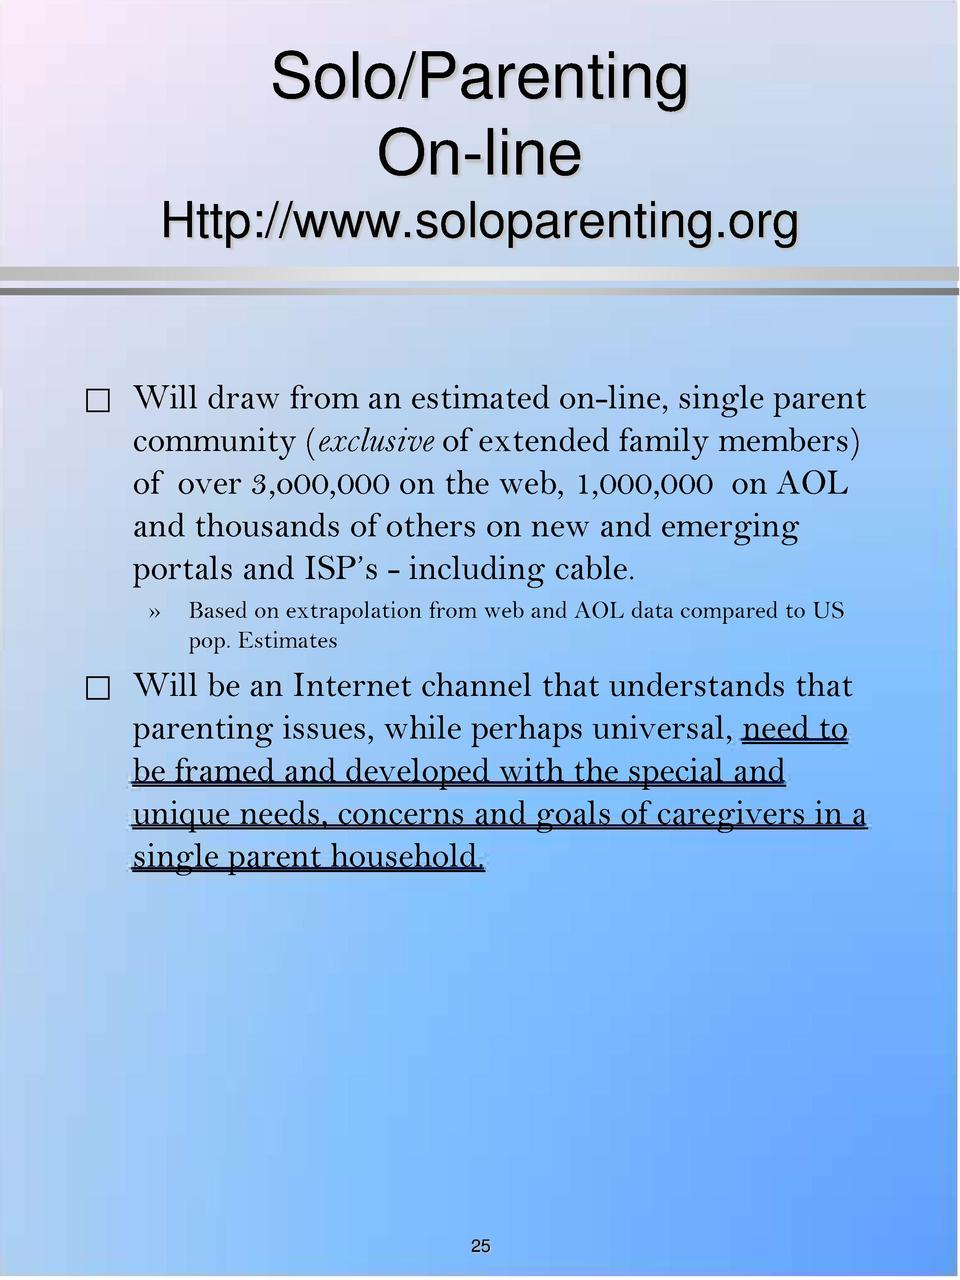 Solo Parenting On-line Http   www.soloparenting.org       Will draw from an estimated on-line, single parent community  ex...